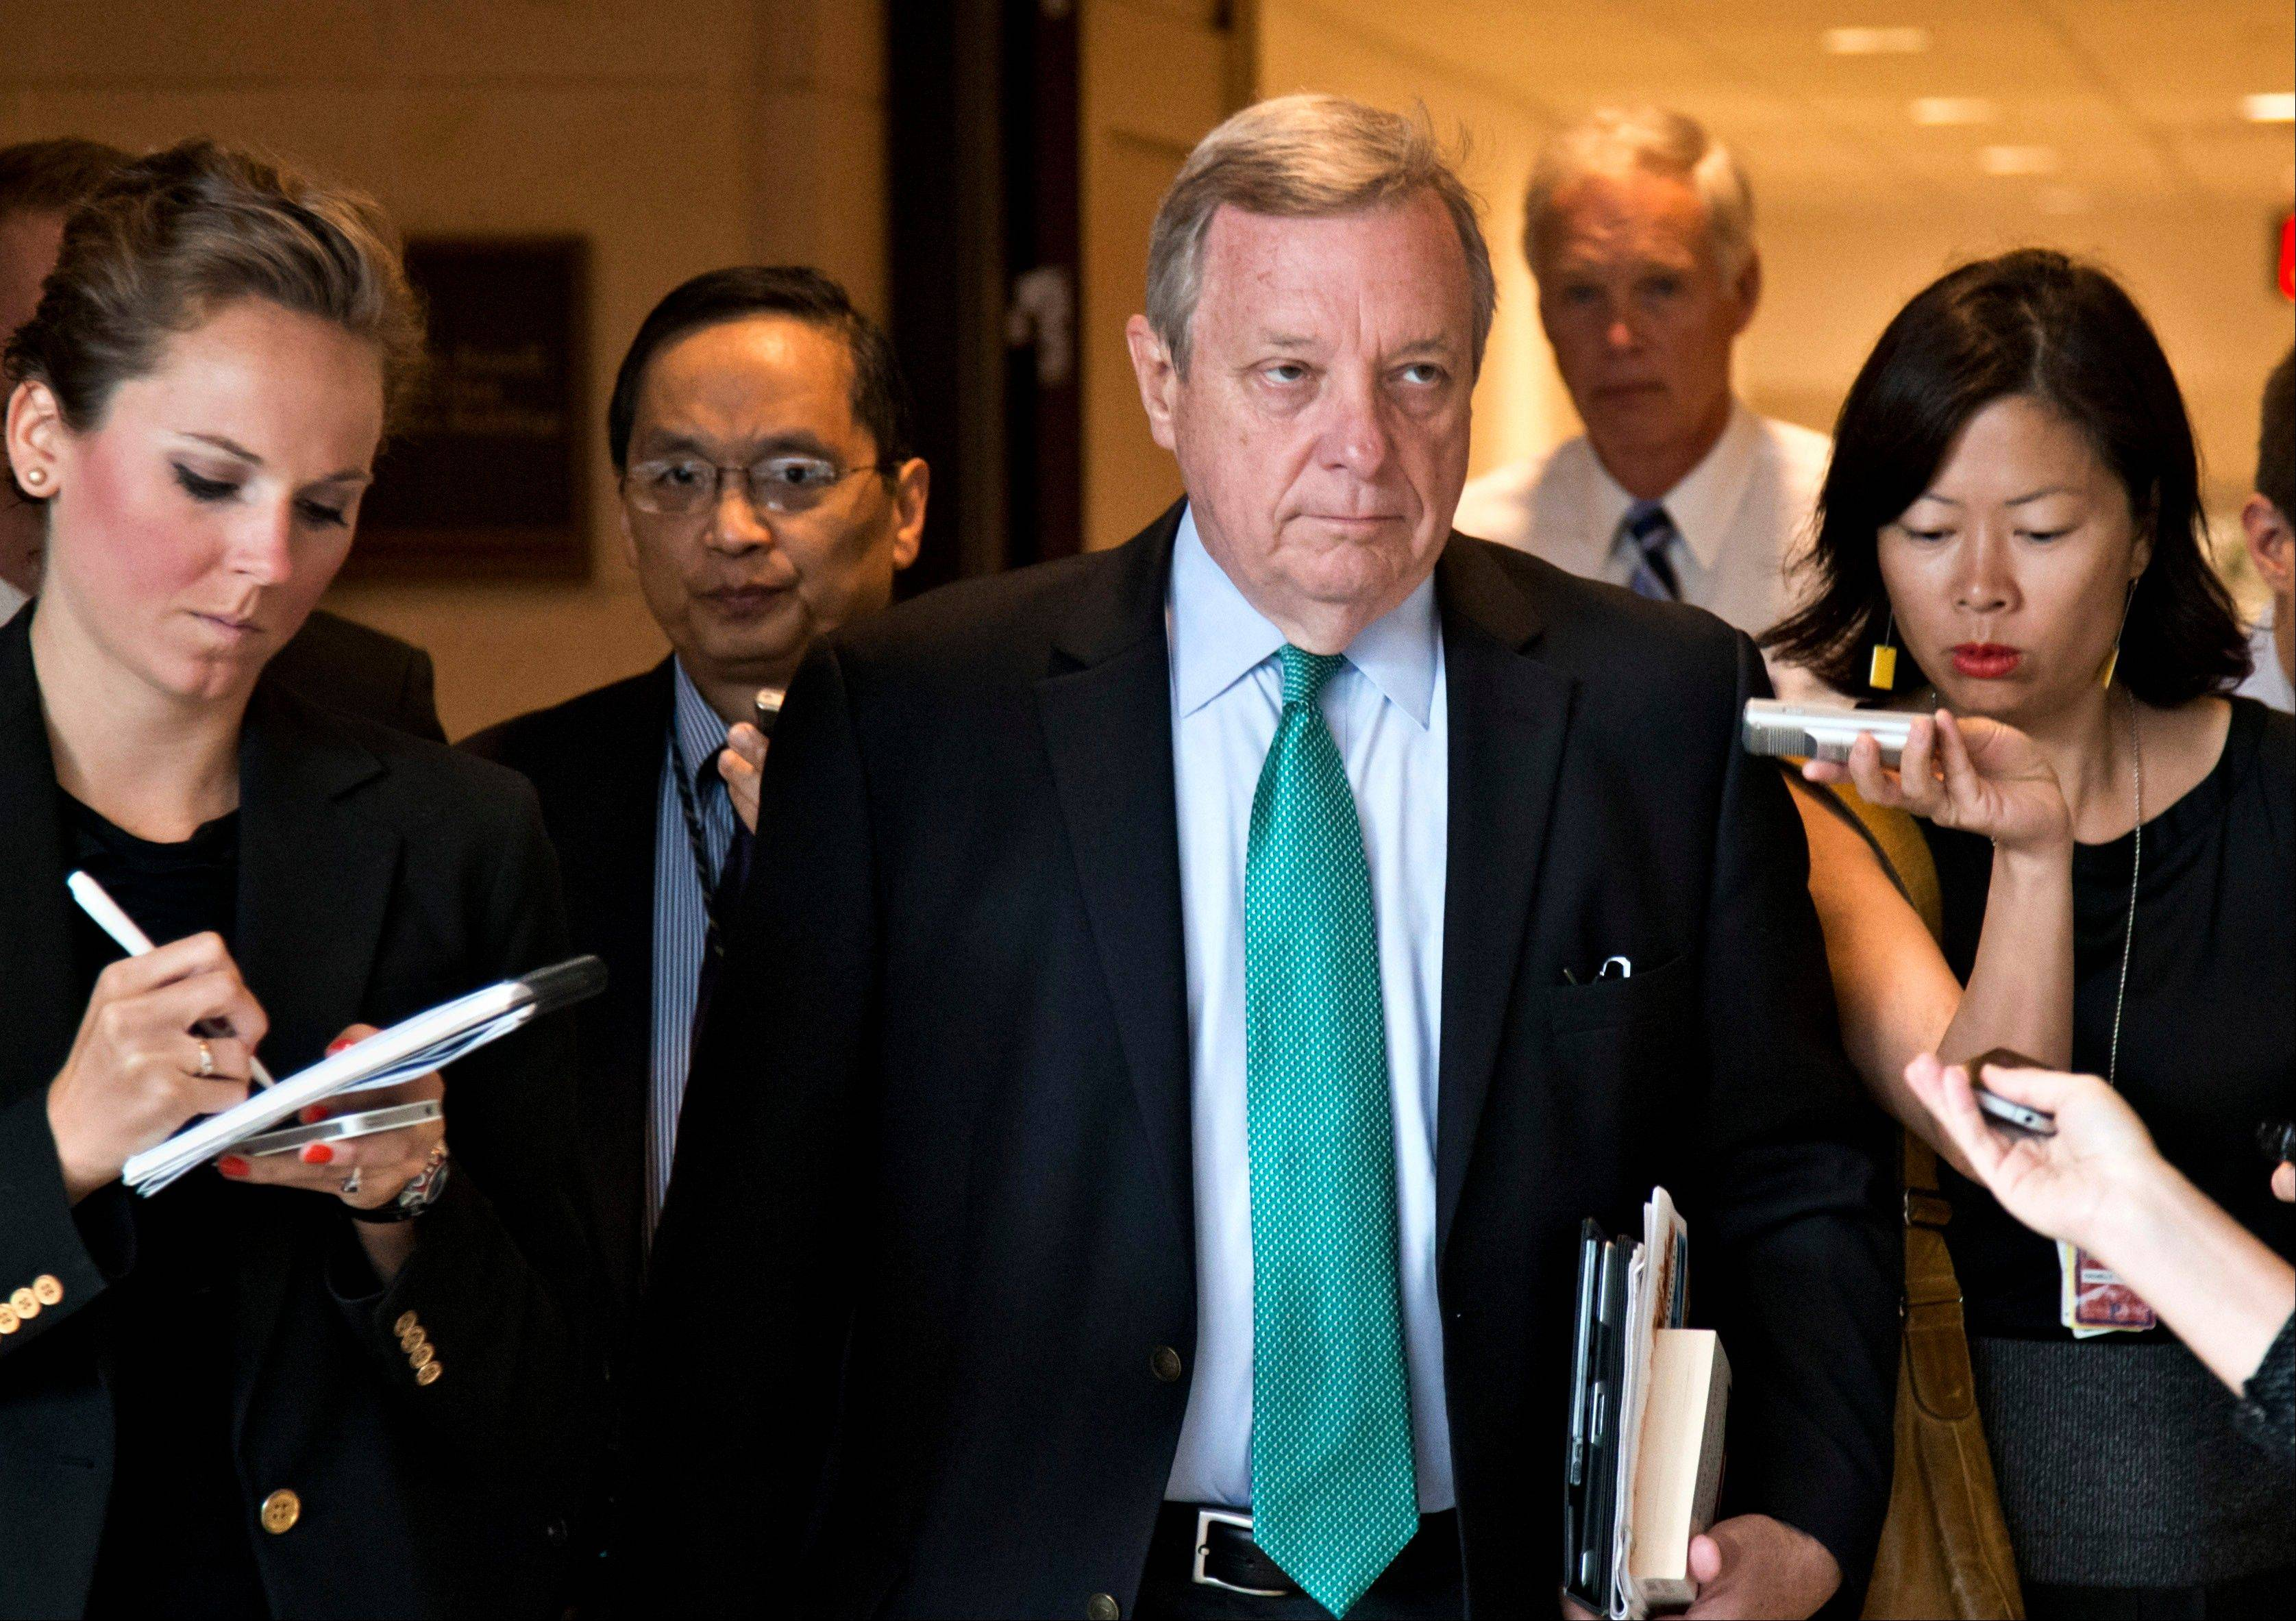 This Sept. 4, 2013, file photo shows Illinois Democrat Sen. Dick Durbin, the Senate assistant majority leader, arriving for a top-secret briefing for senators with Secretary of State John Kerry at the Capitol in Washington. On Mondayin Chicago, Durbin says he had no problem taking down a Facebook post disputed by the Obama administration once White House officials acknowledged giving him wrong information.